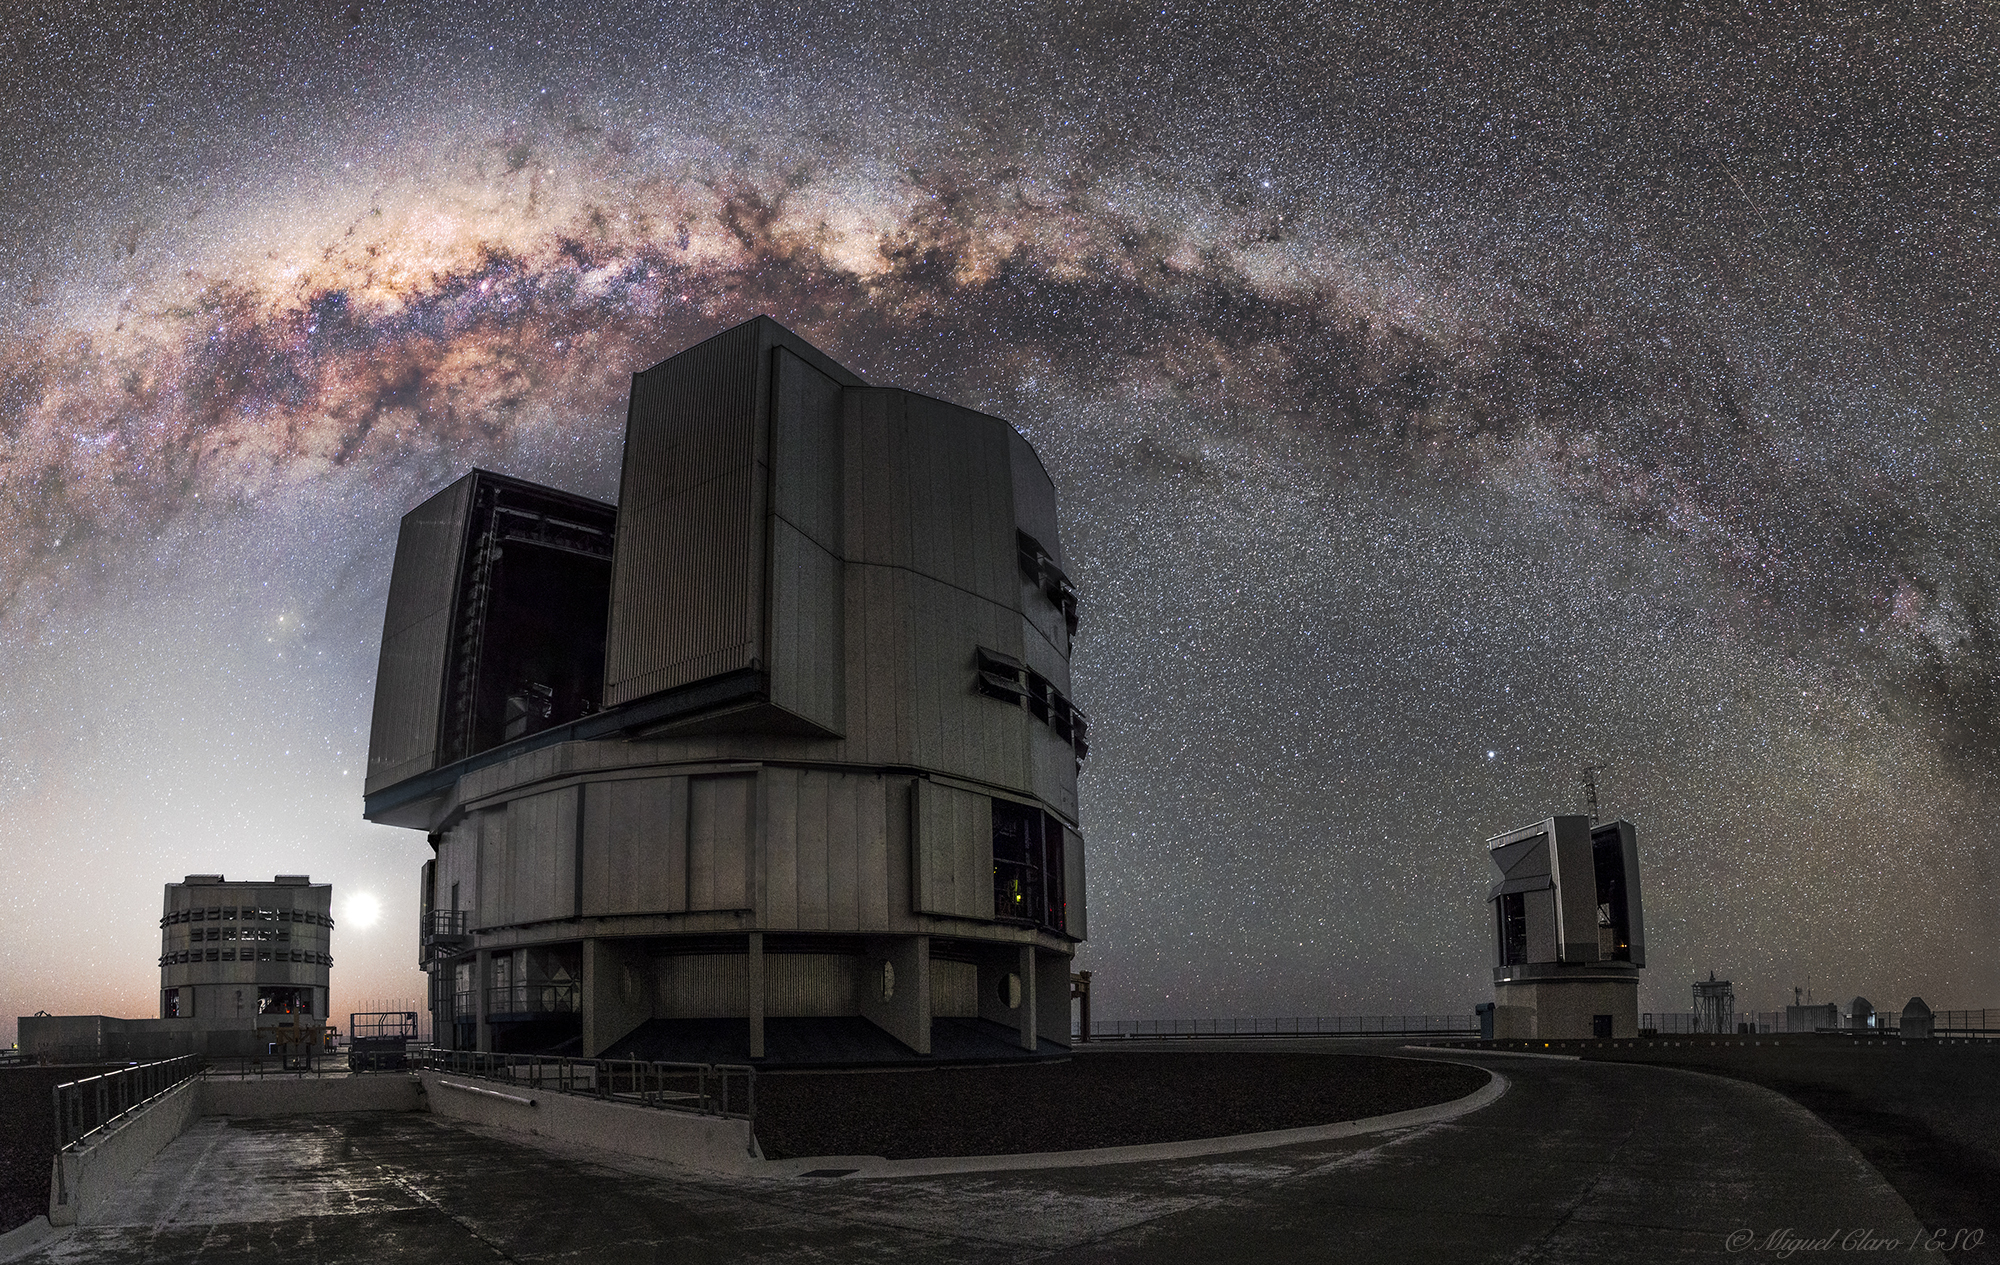 Milky Way Arc above the Yepun and VST Telescopes